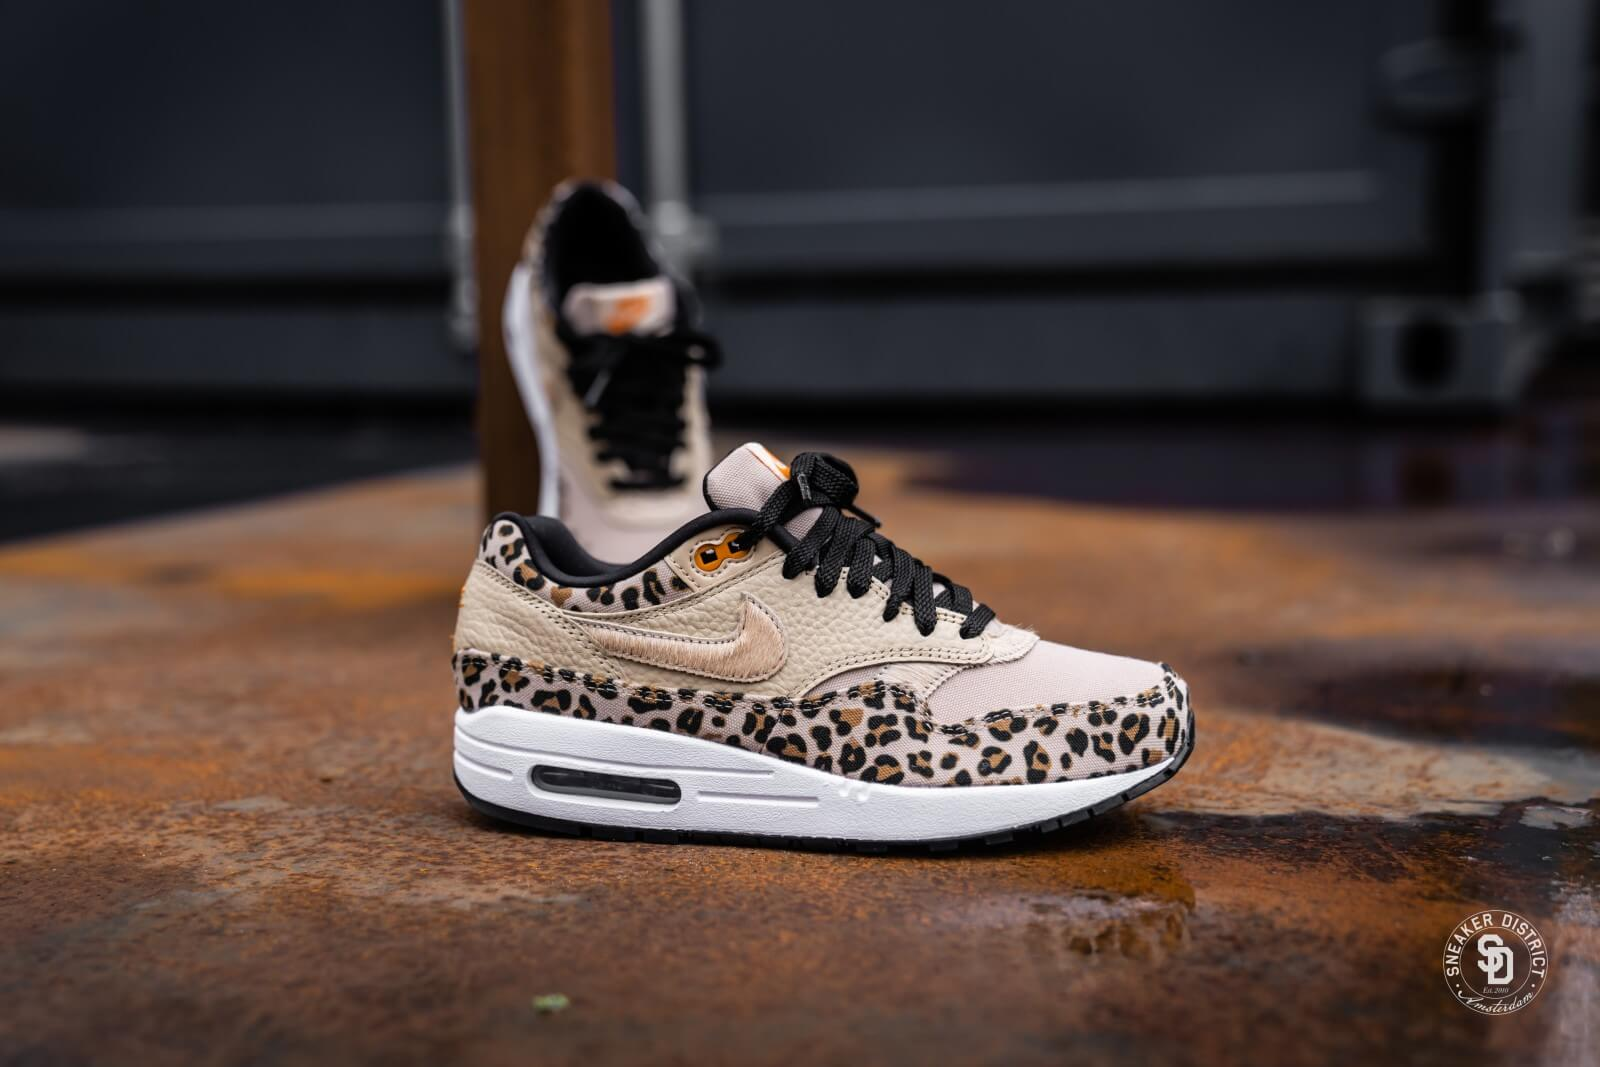 Nike Women's Air Max 1 Safari Desert Ore/Orange Peel-Black